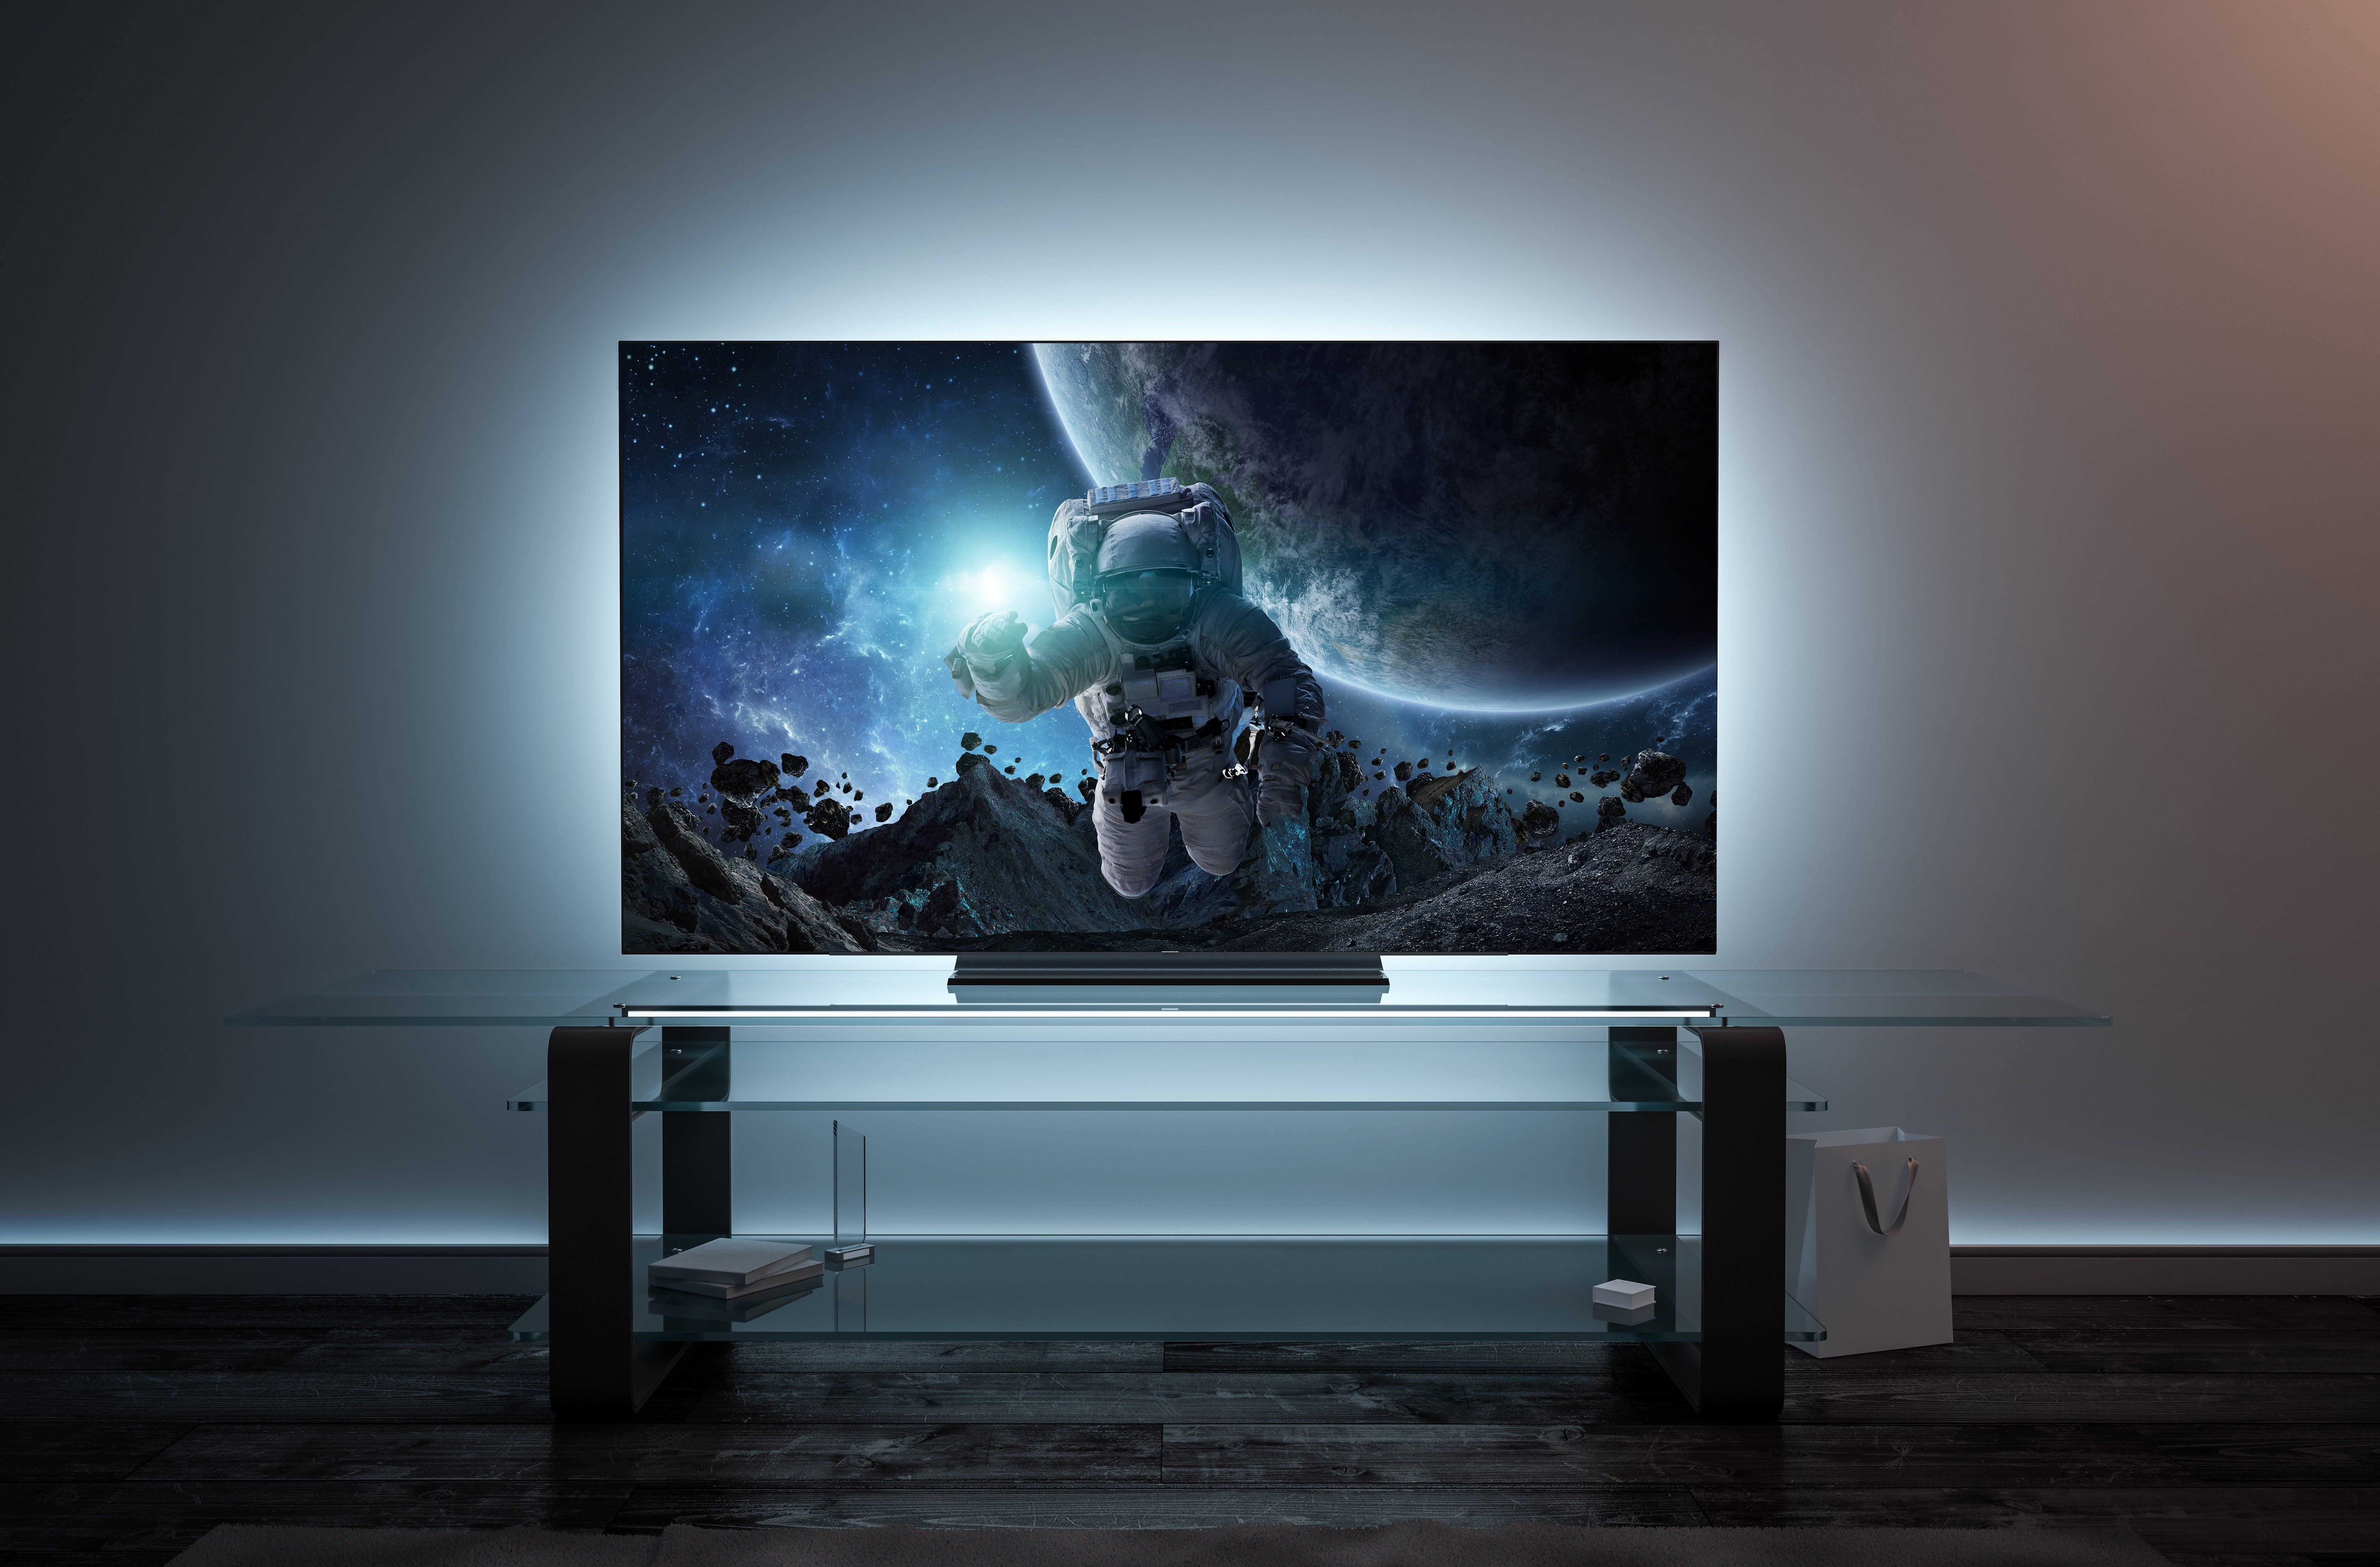 scifi movie on tv Blank white tv screen interior in darkness mockup, front view, 3d rendering. Empty telly plasma mokcup display in living room mock up. Clear smart panel monitor mokc on glass shelf template.; Shutterstock ID 1290402403; Job (TFH, TOH, RD, BNB, CWM, CM): RD